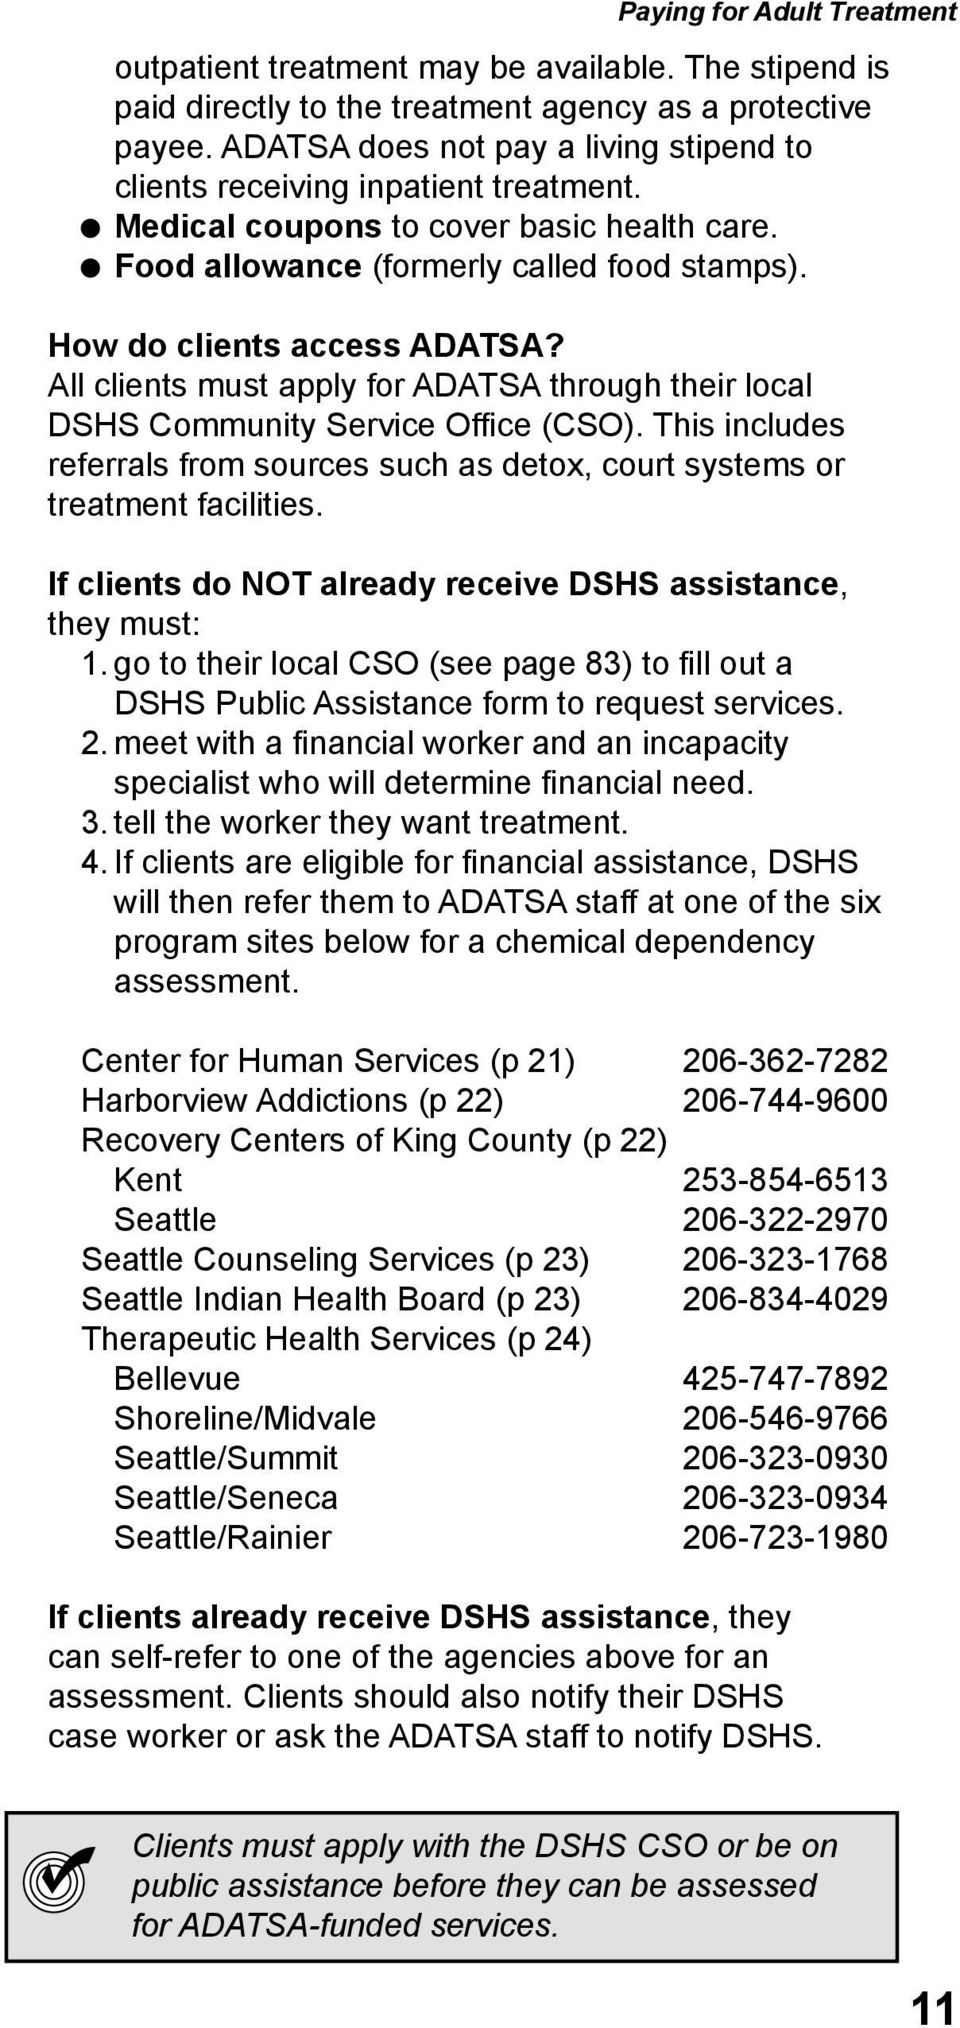 All clients must apply for ADATSA through their local DSHS Community Service Office (CSO). This includes referrals from sources such as detox, court systems or treatment facilities.